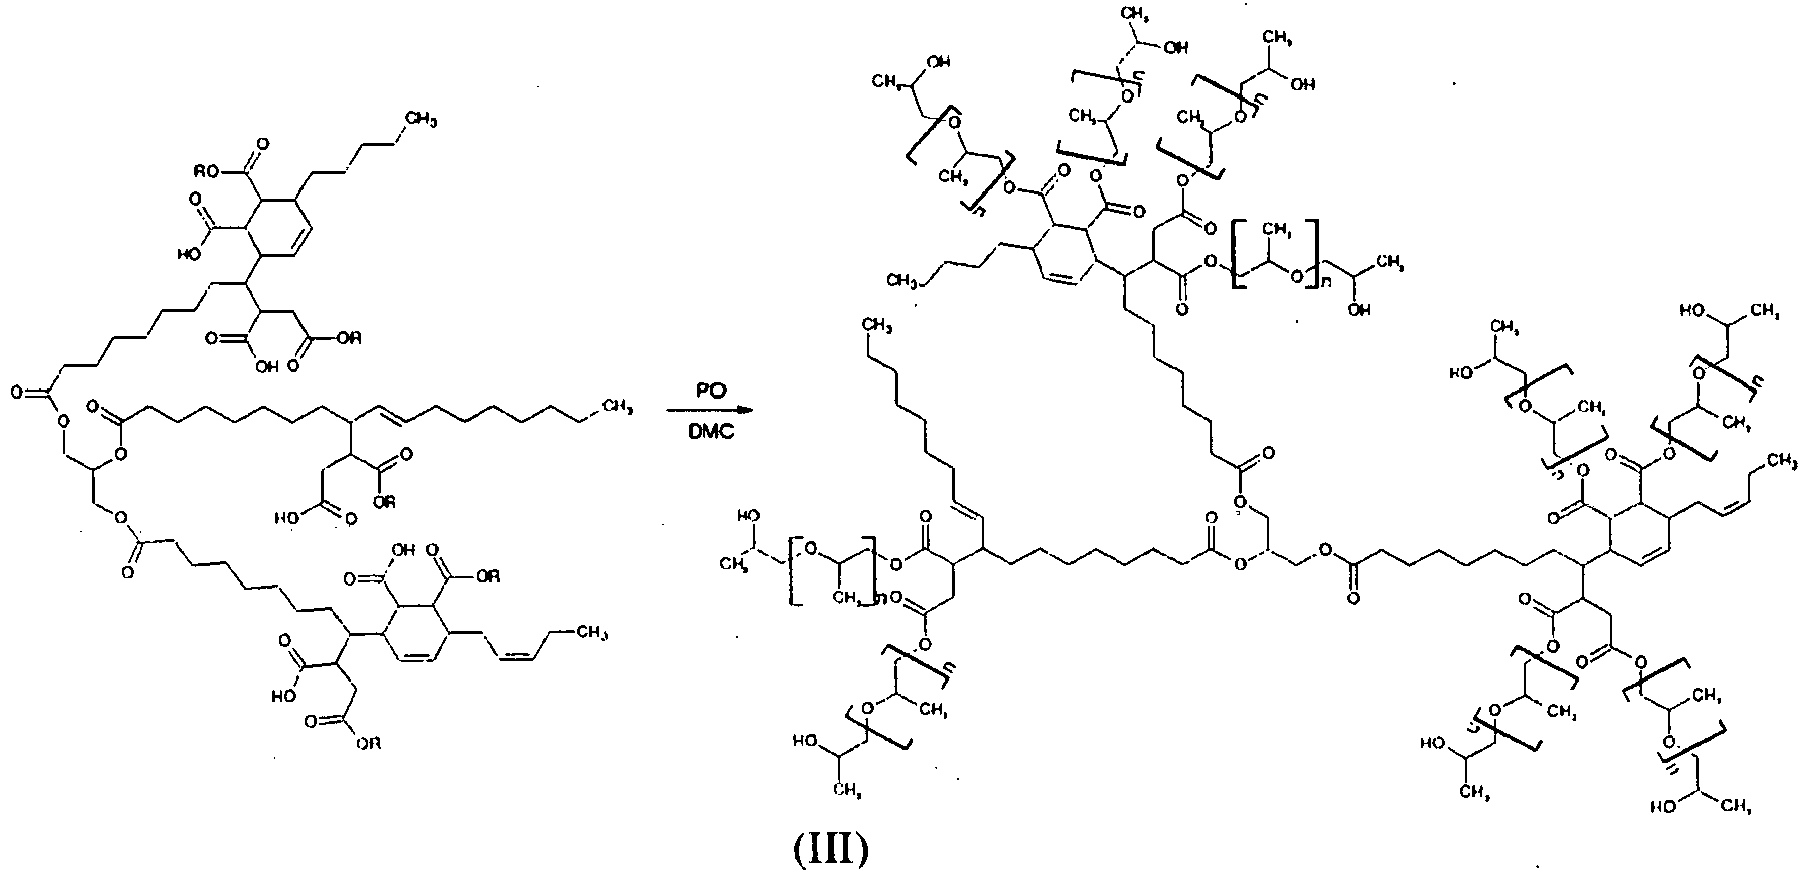 MODIFIED NATURAL OILS AND PRODUCTS MADE THEREFROM - Patent 2350191